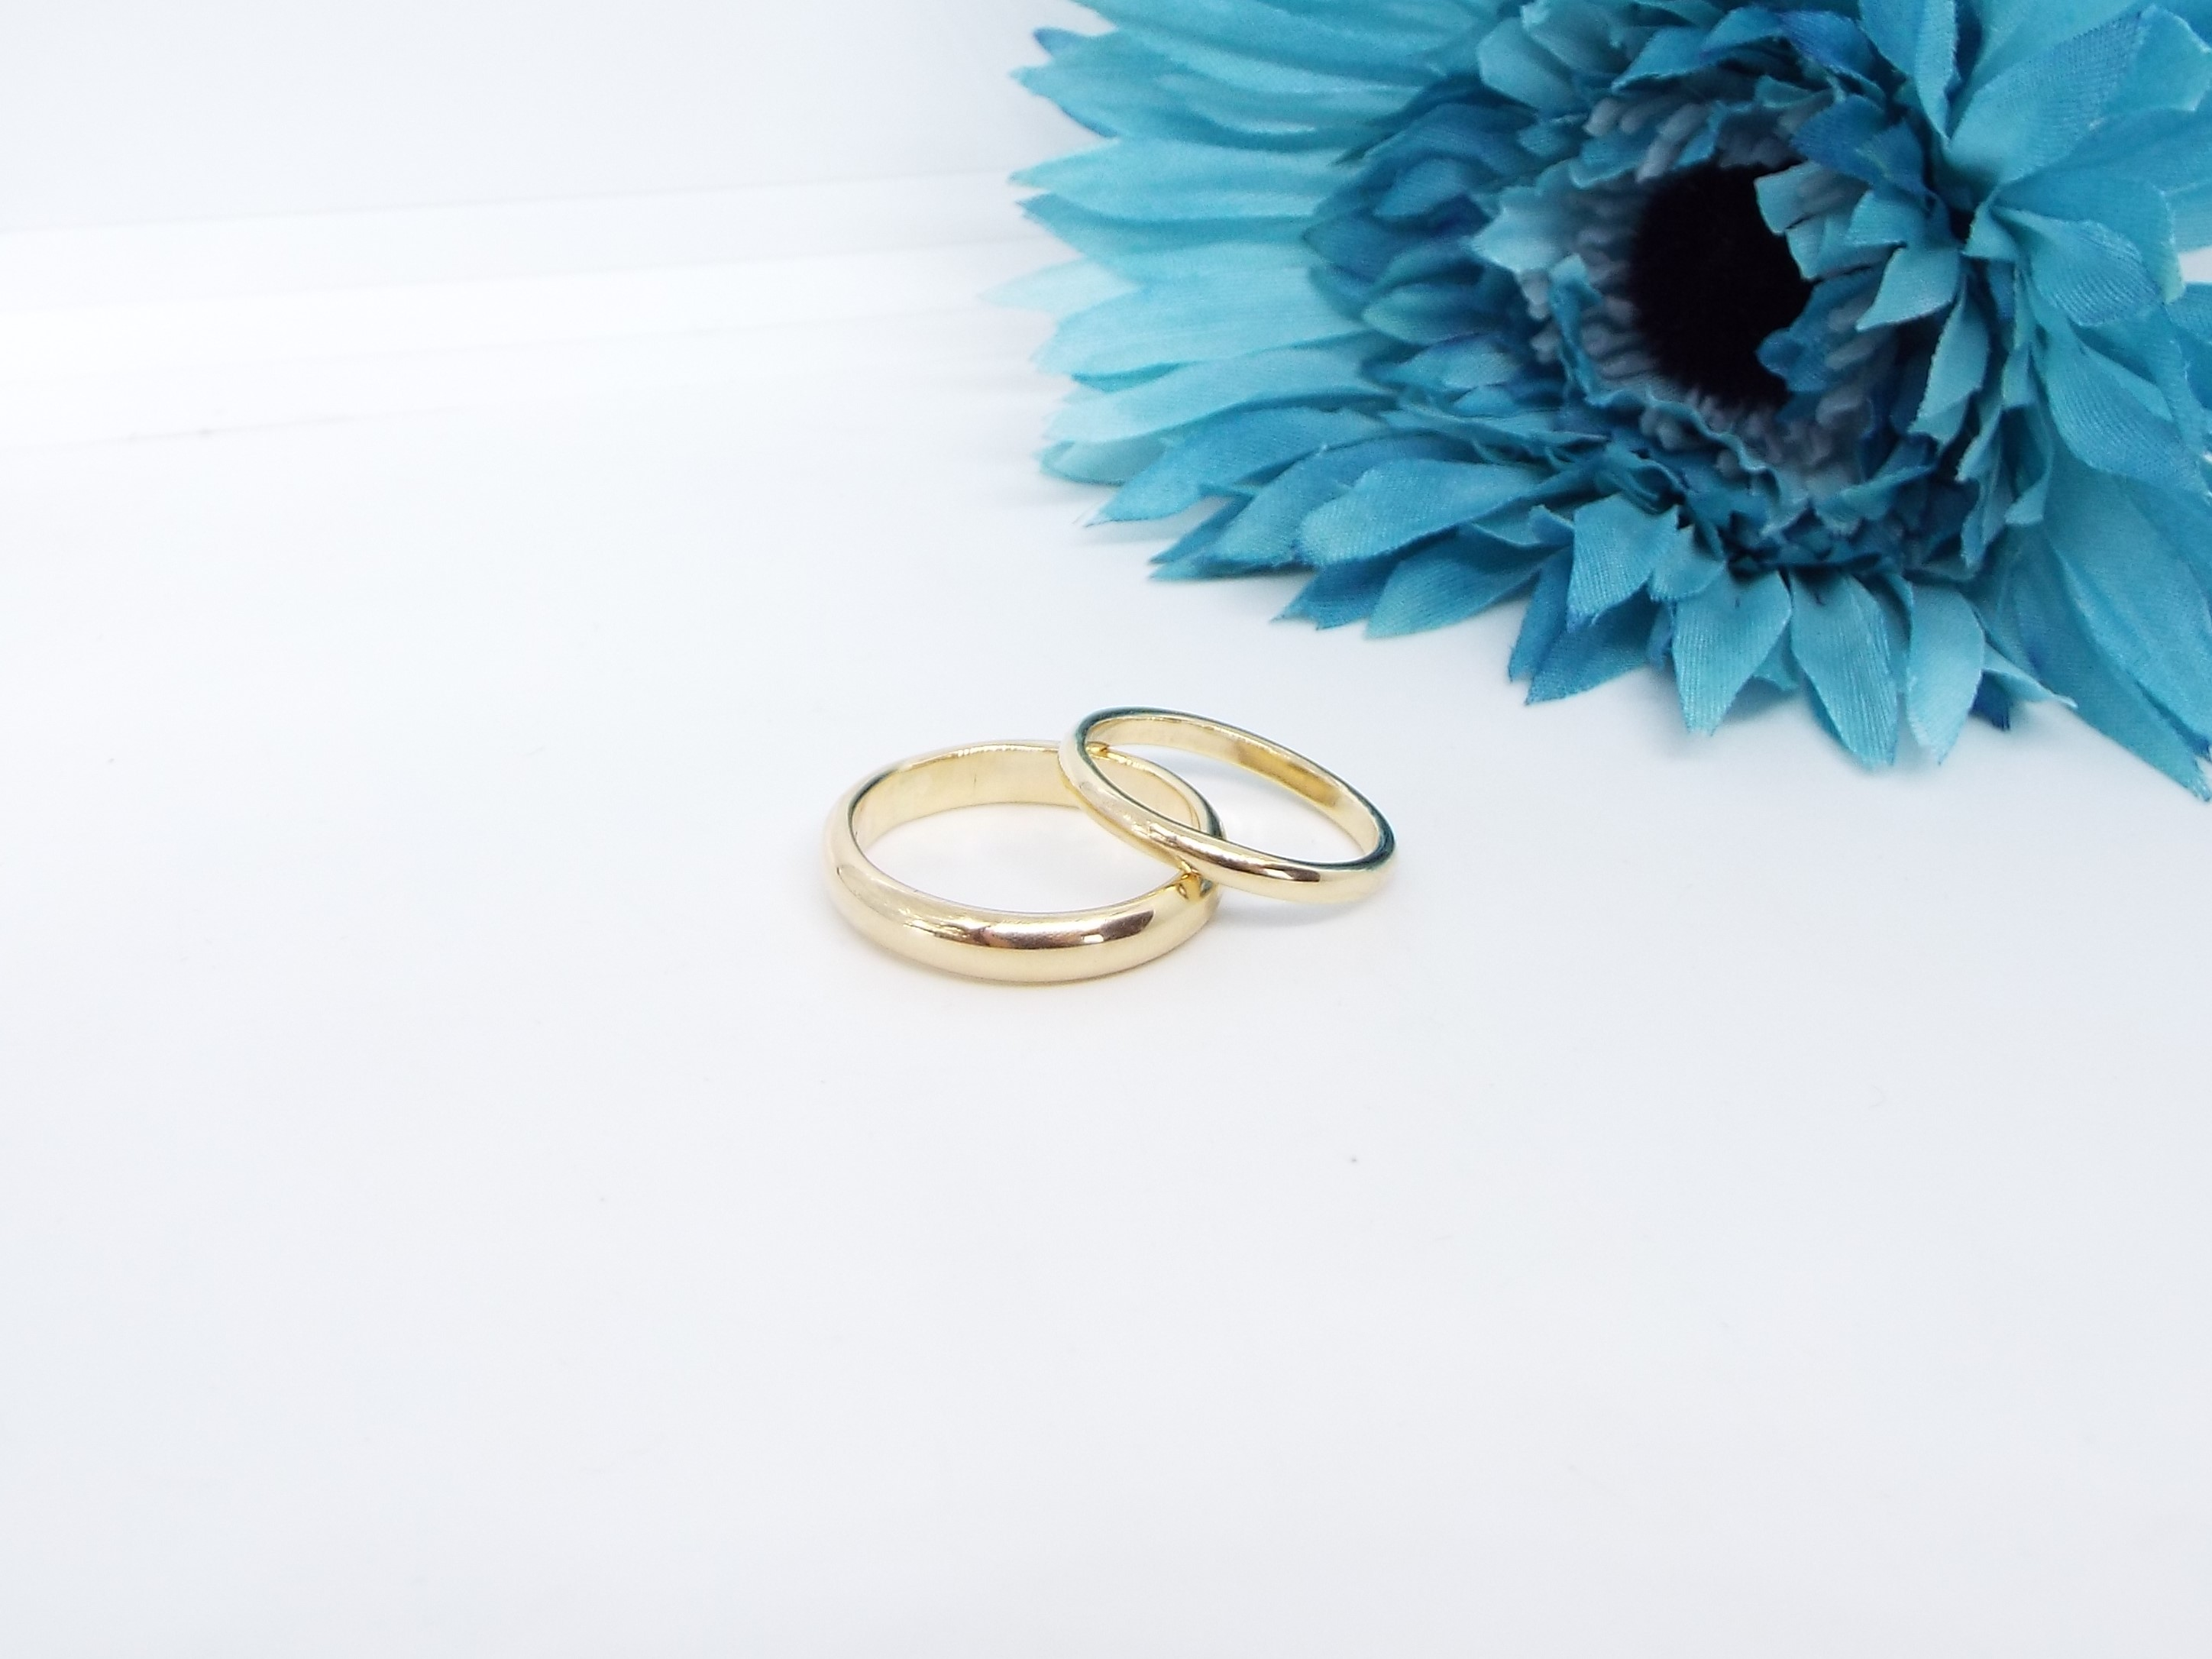 9ct Gold Wedding ring set - D shaped - Smooth Polished